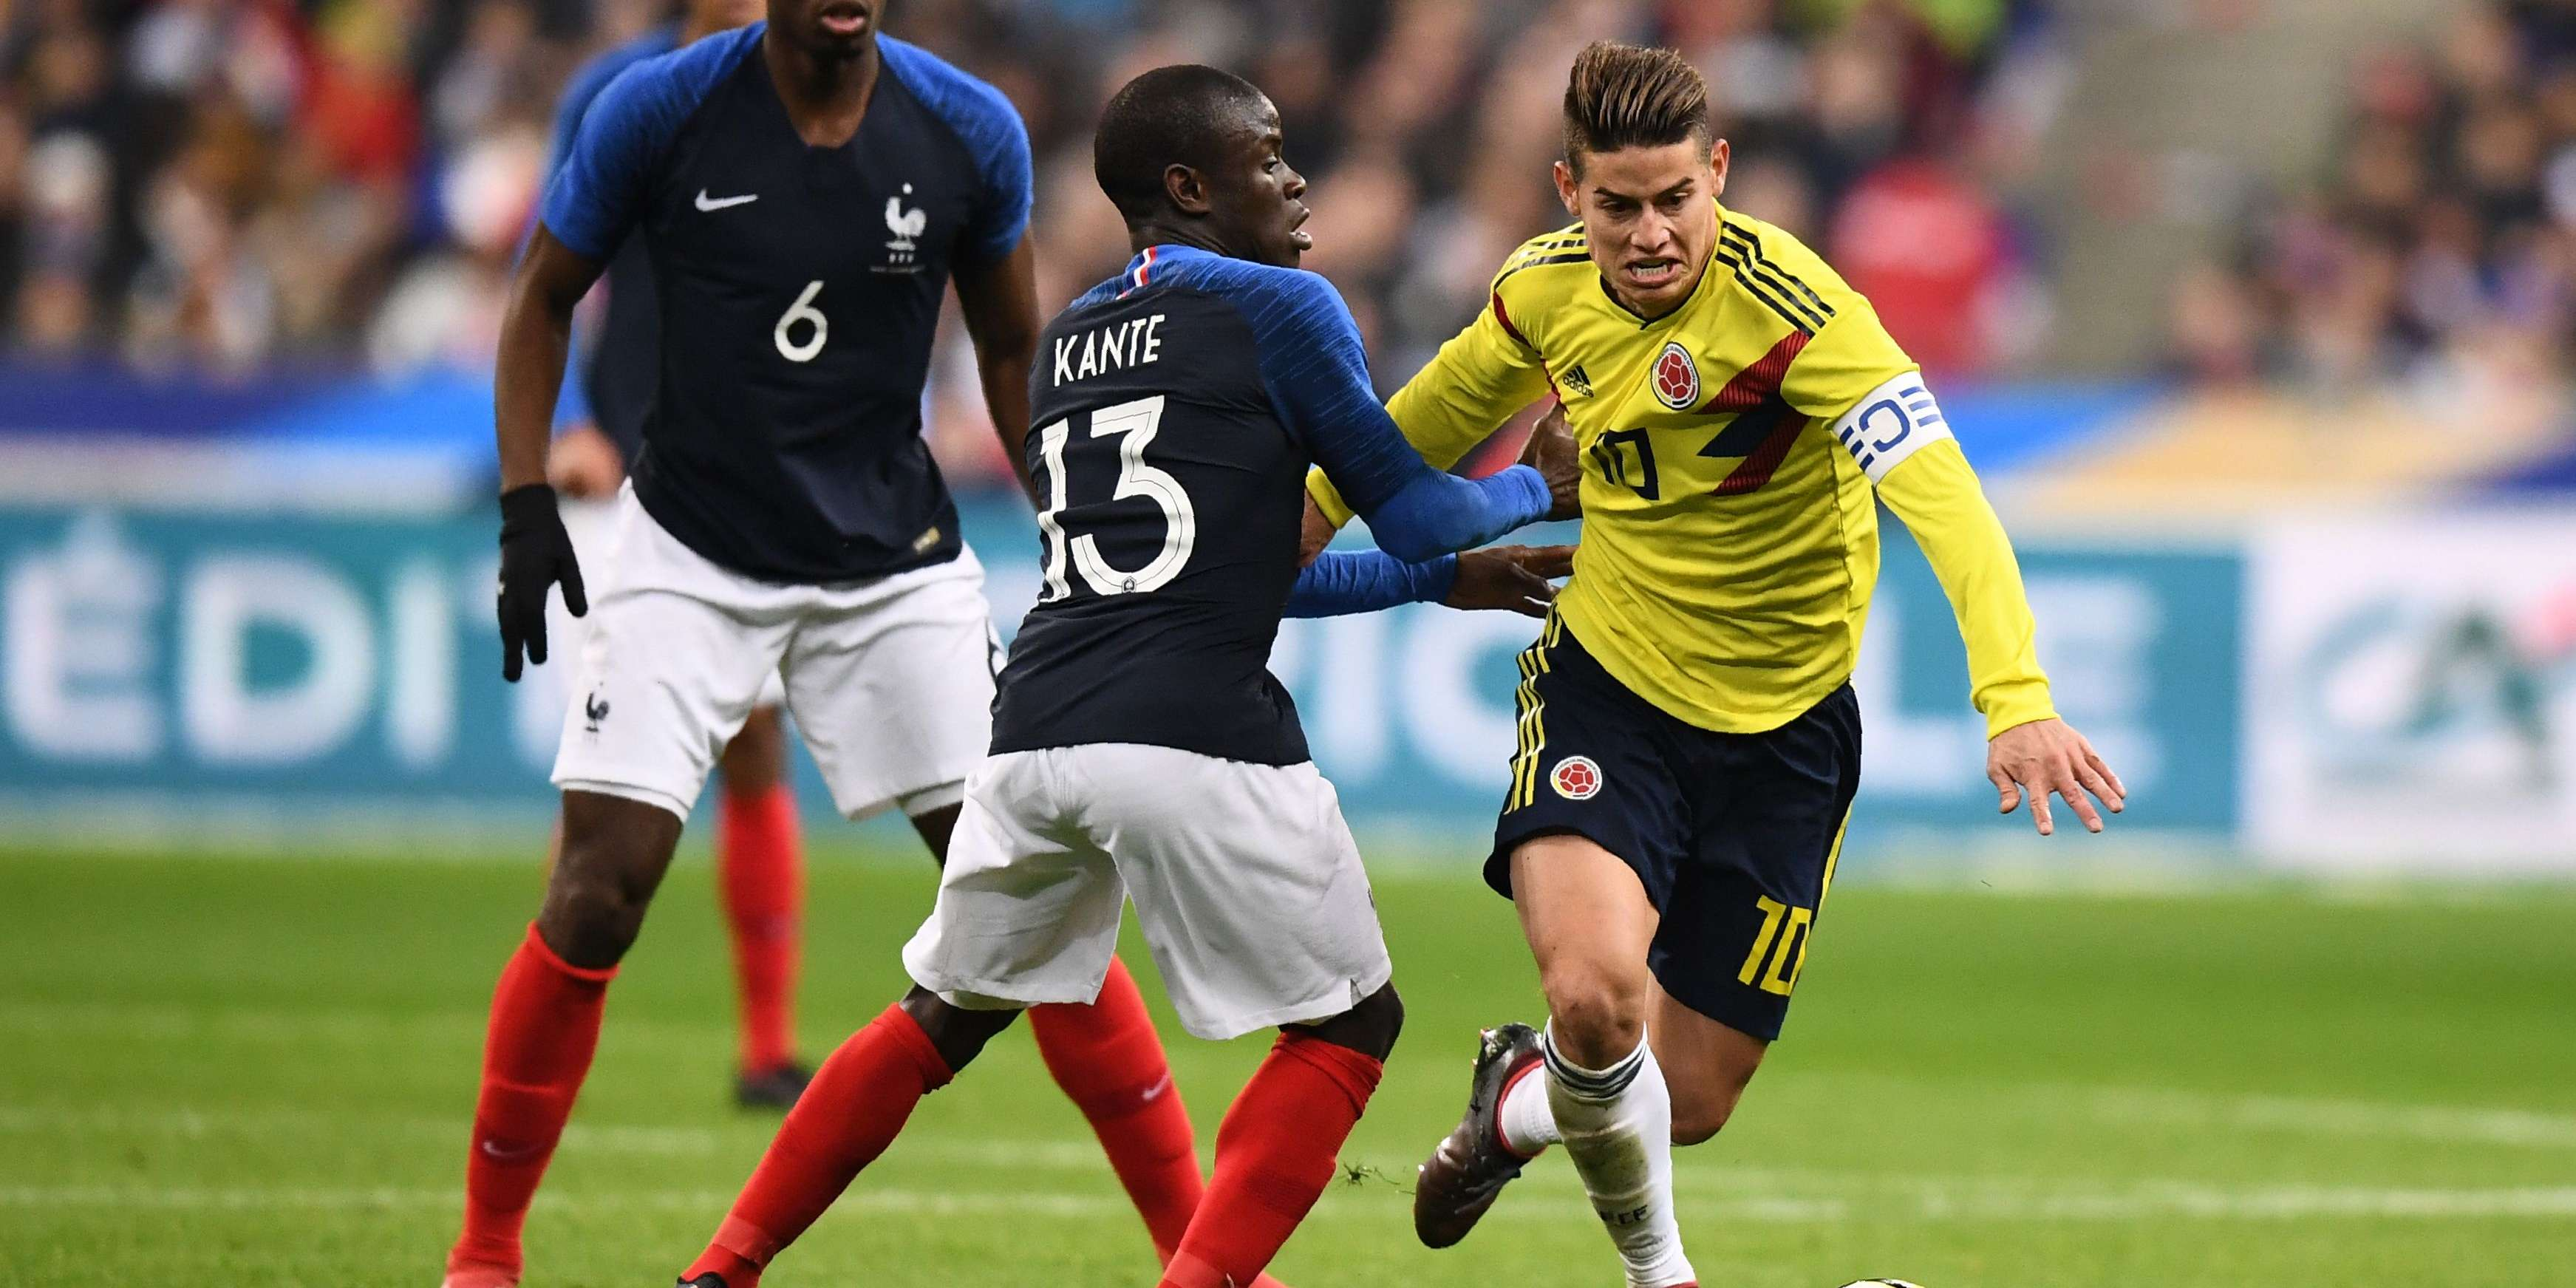 En direct football la colombie renverse la vapeur et bat la france 3 2 - Coupe de france en direct france 2 ...